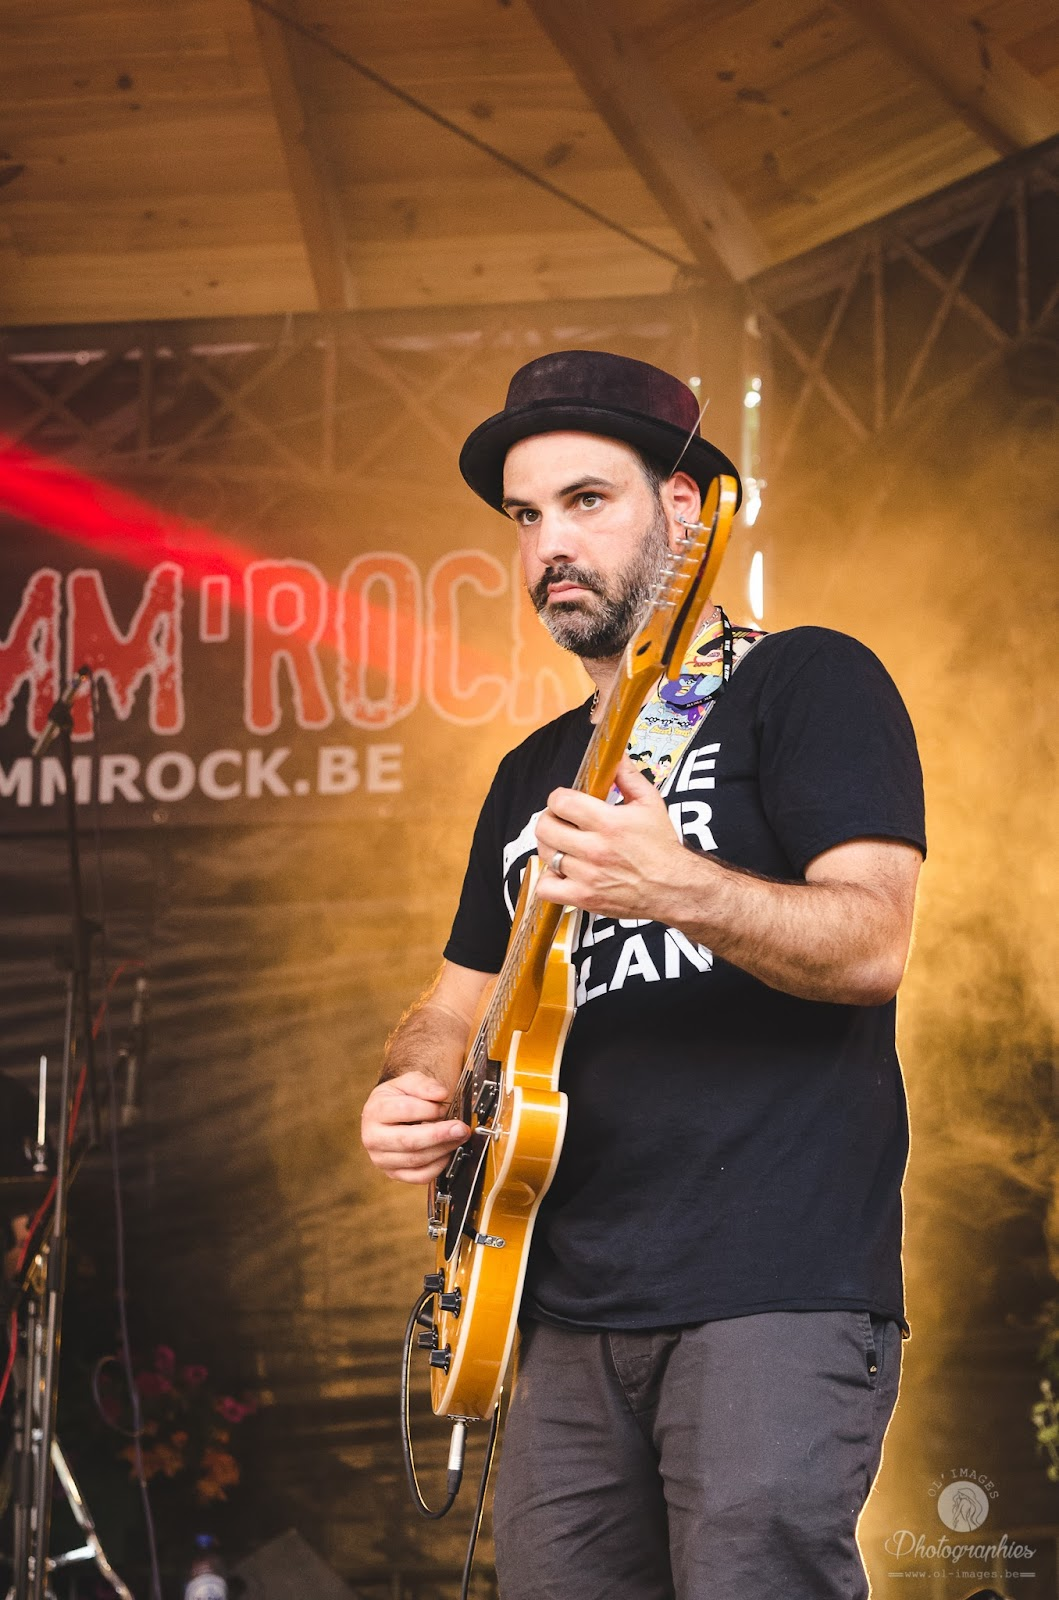 VillePomRock2017_26082017_OL-Images.be--59.jpg